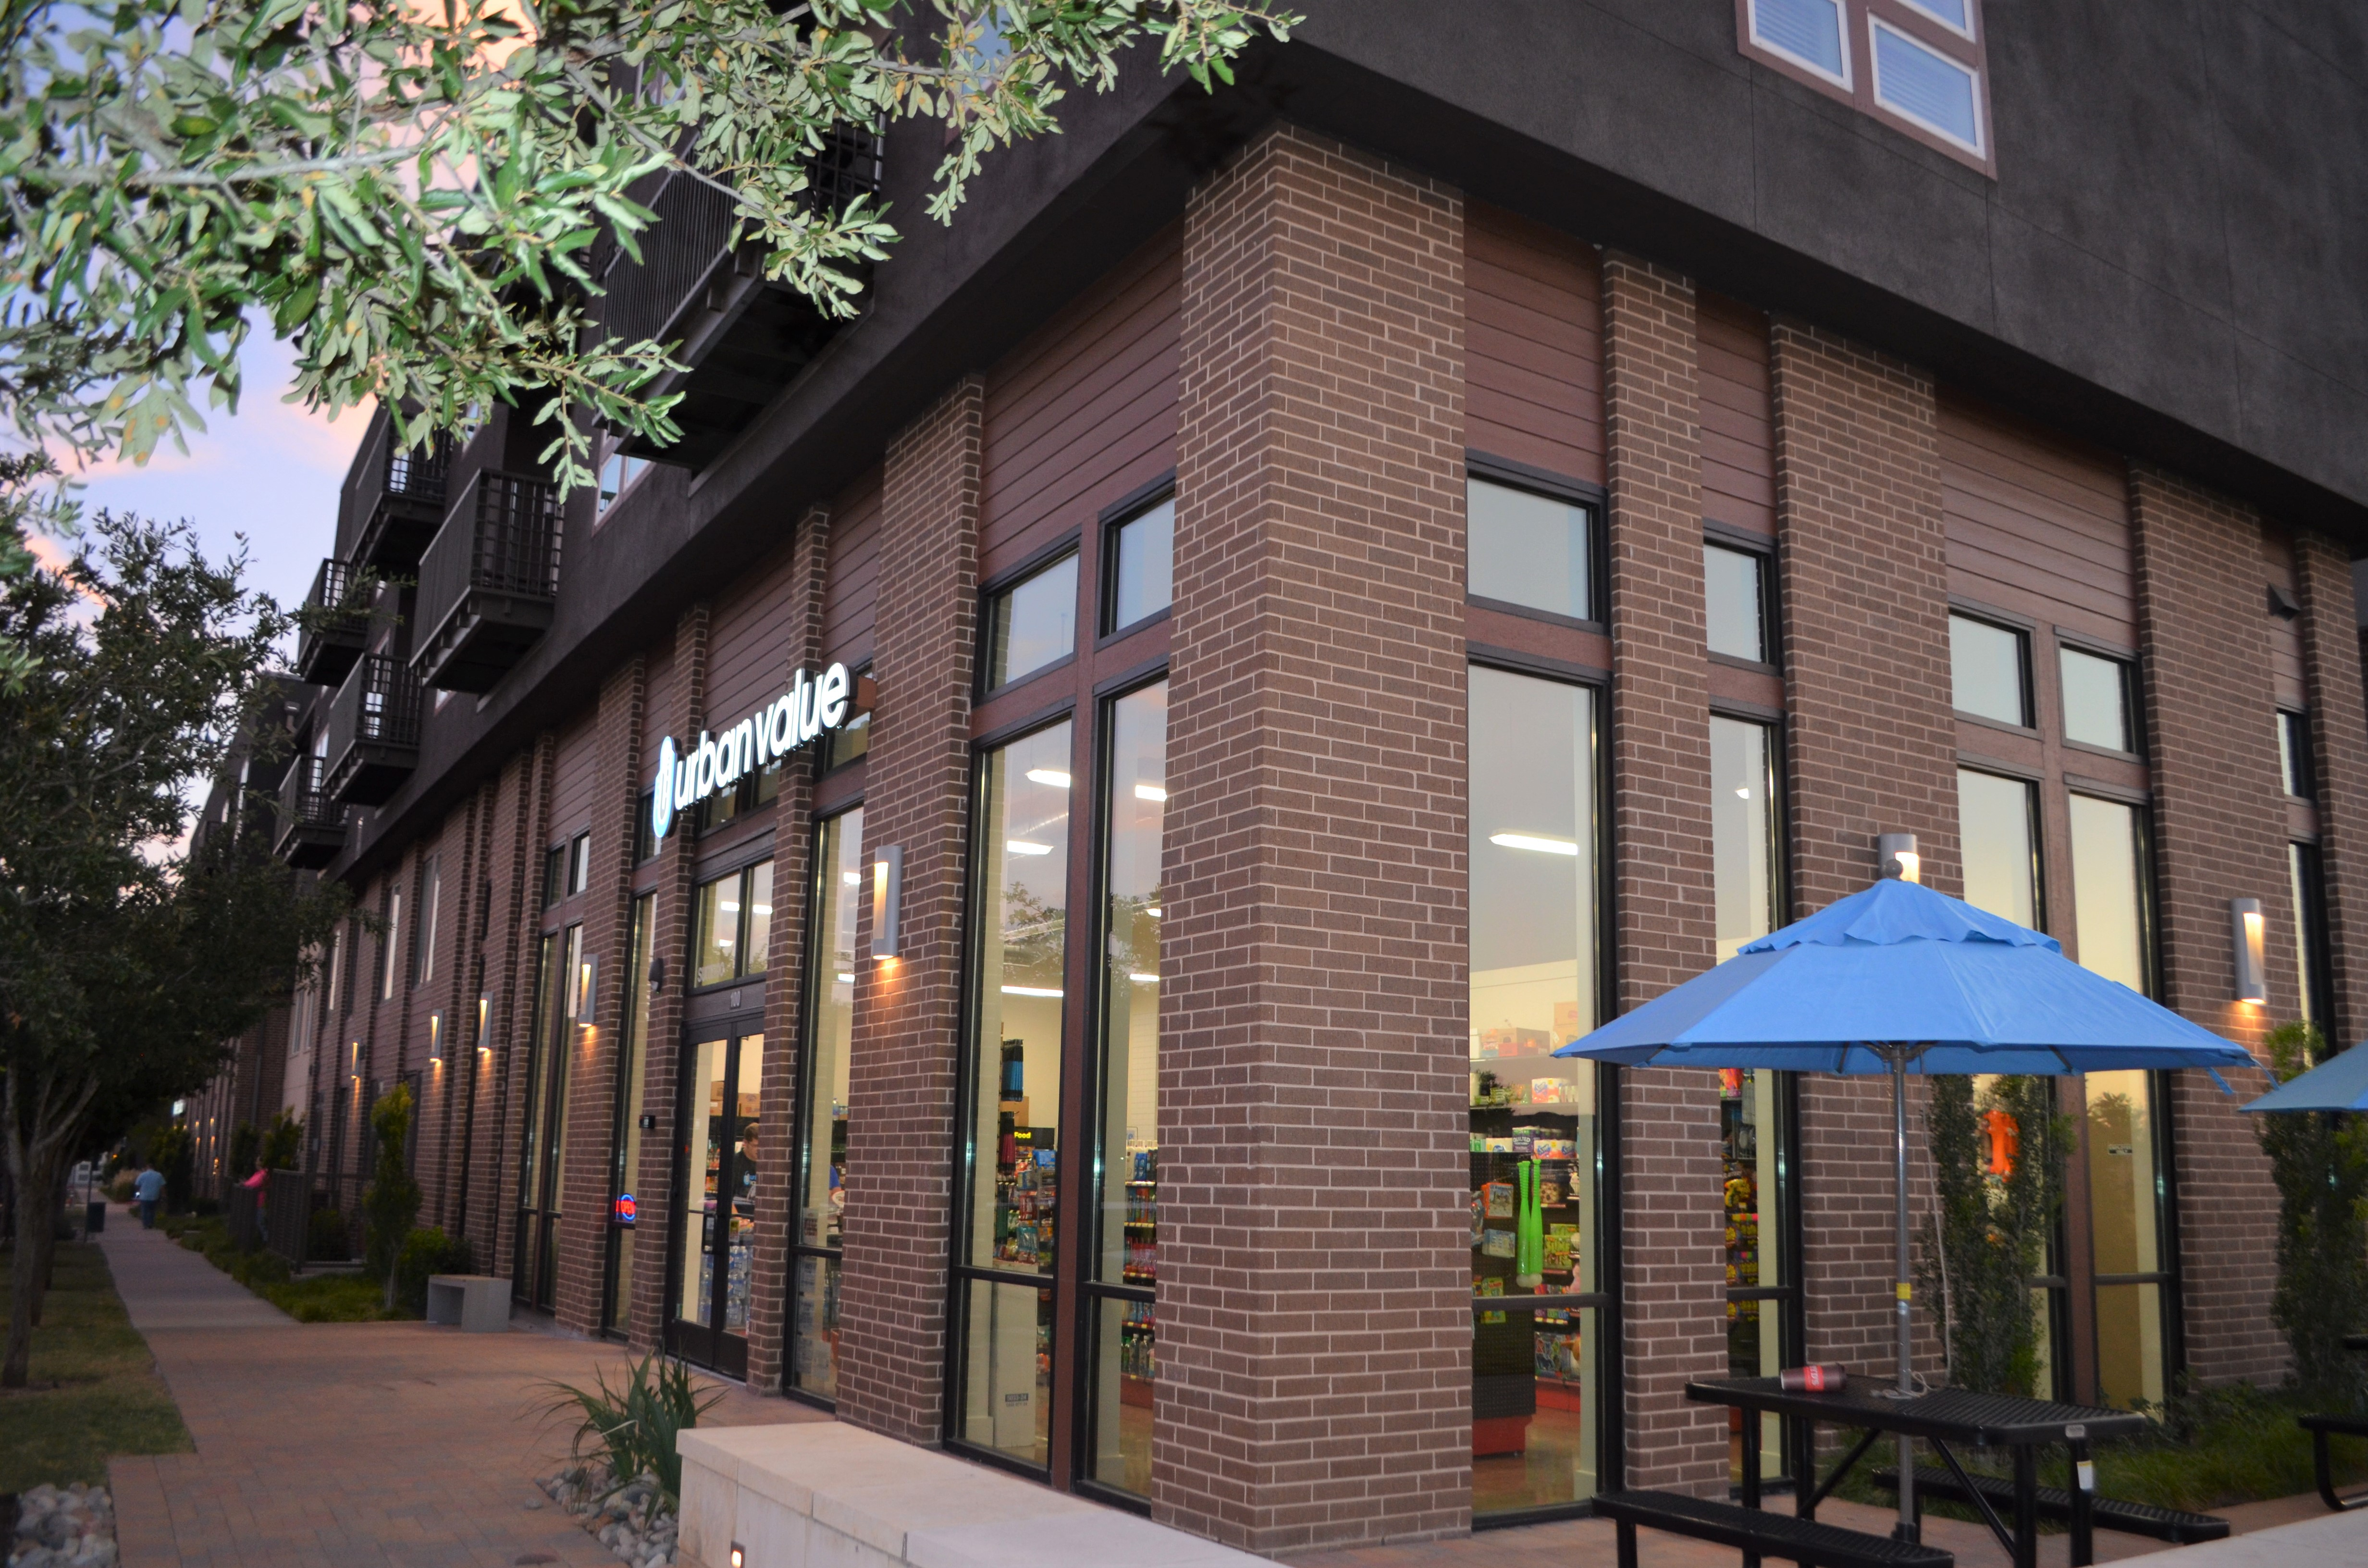 Urban Value Store at Parkside, Craig Ranch Partners with Map Meals for Fresh Food Options